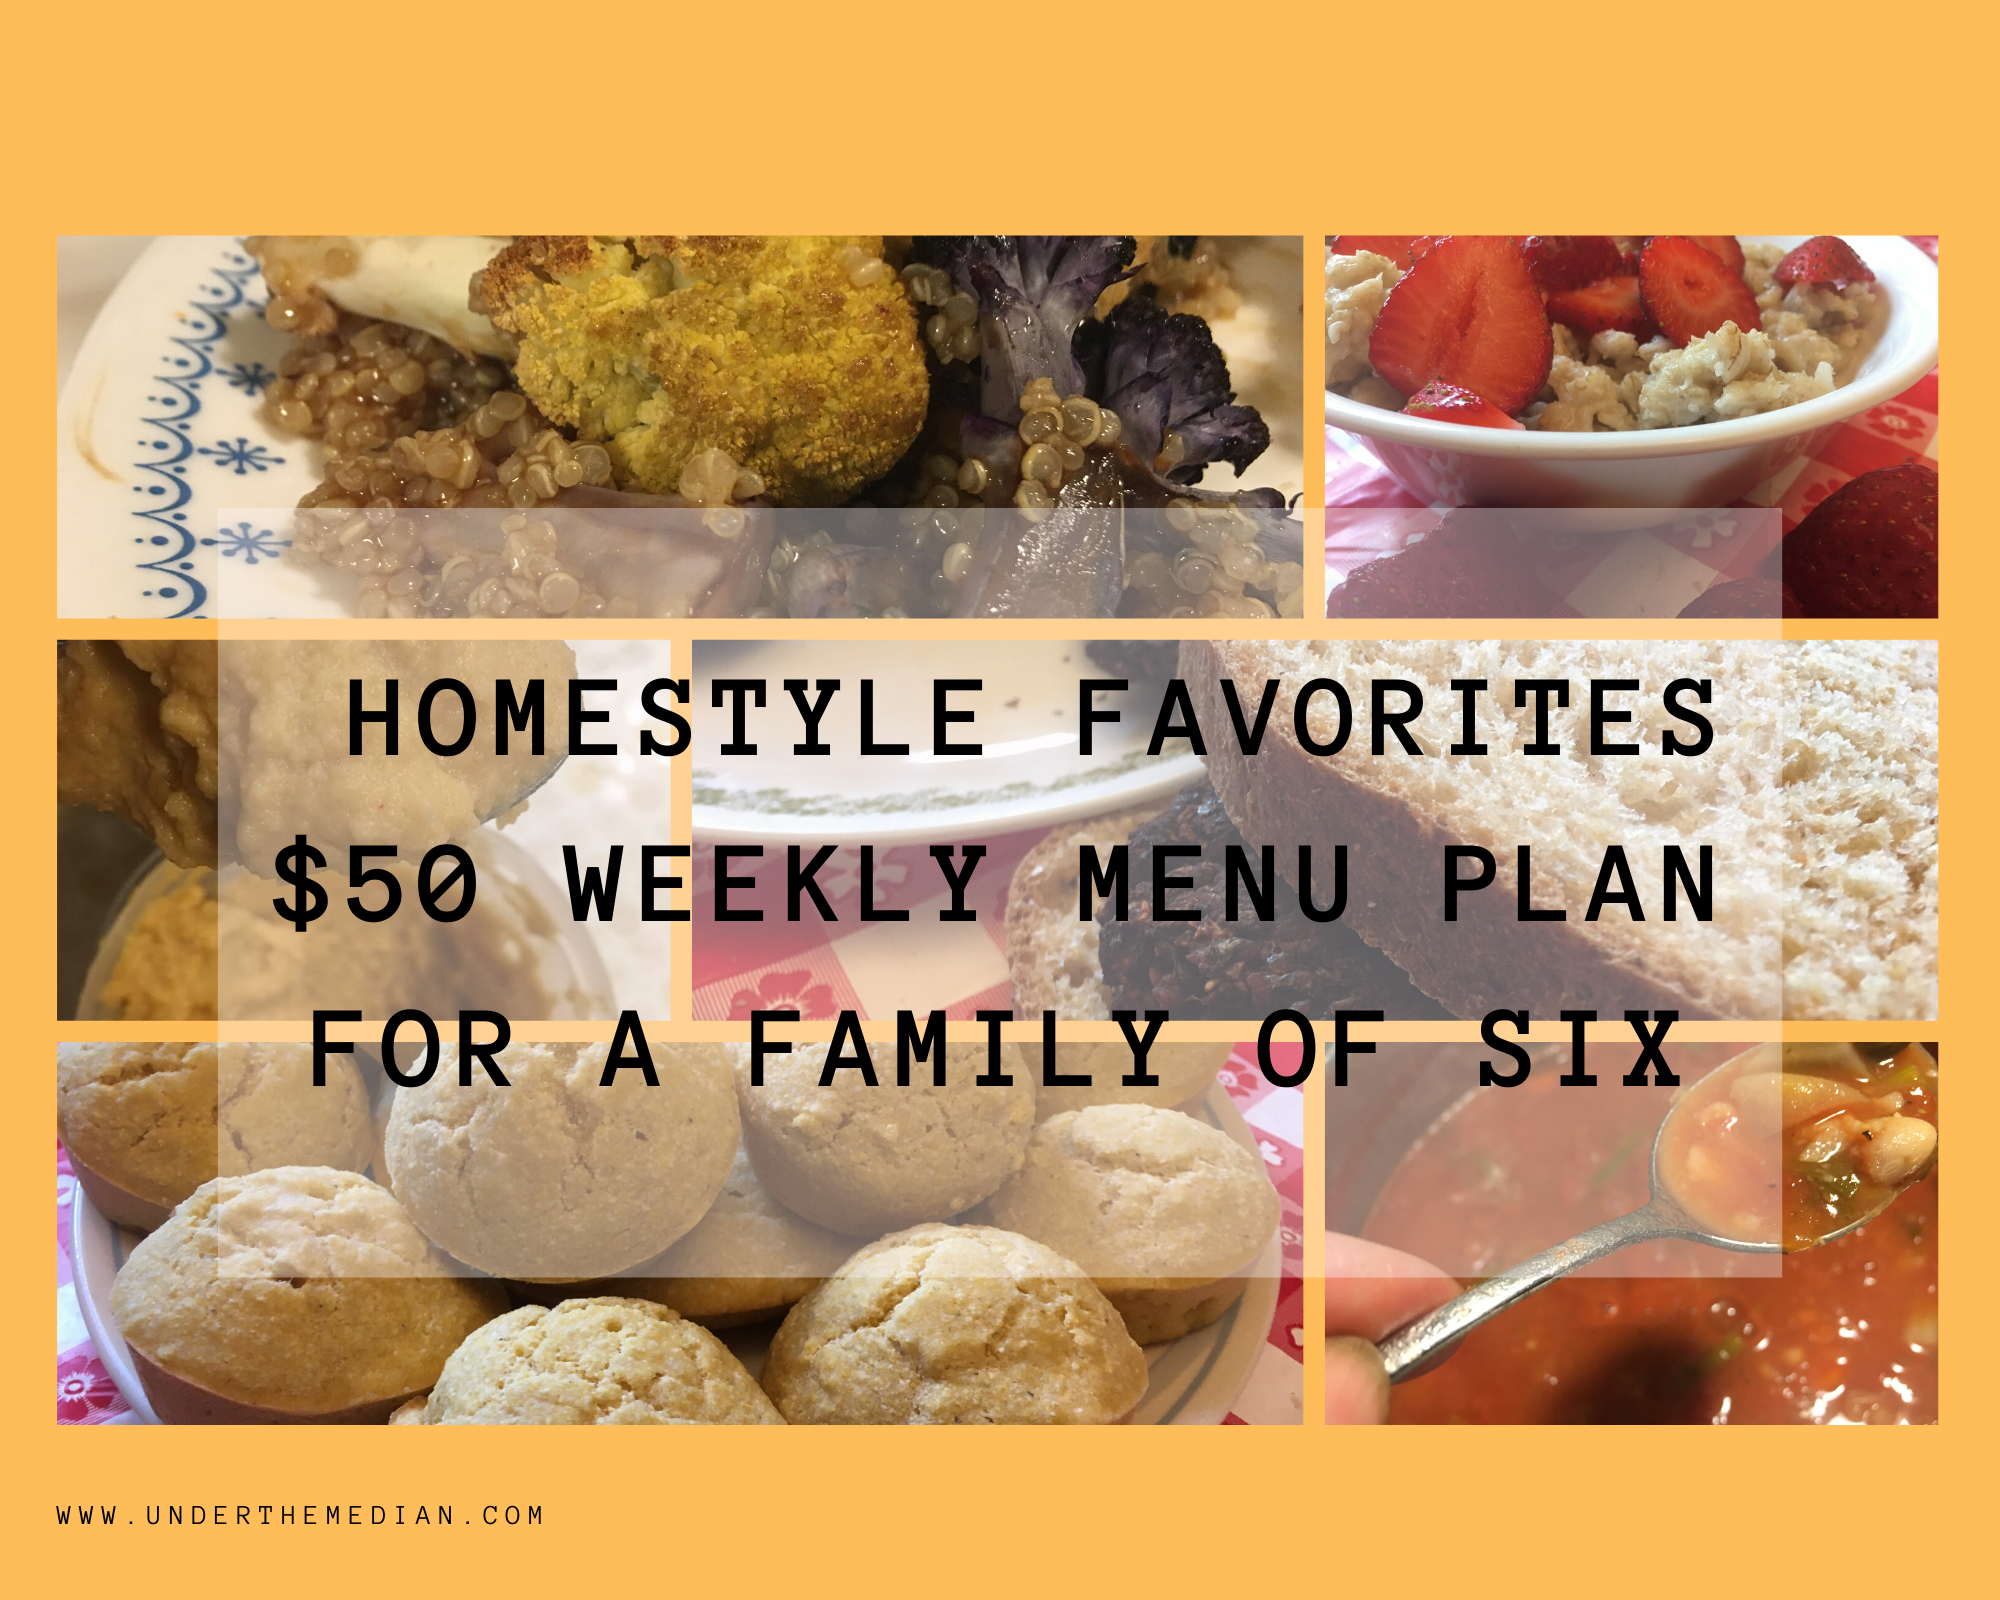 Homestyle Favorites: $50 Weekly Menu Plan for a Family of 6